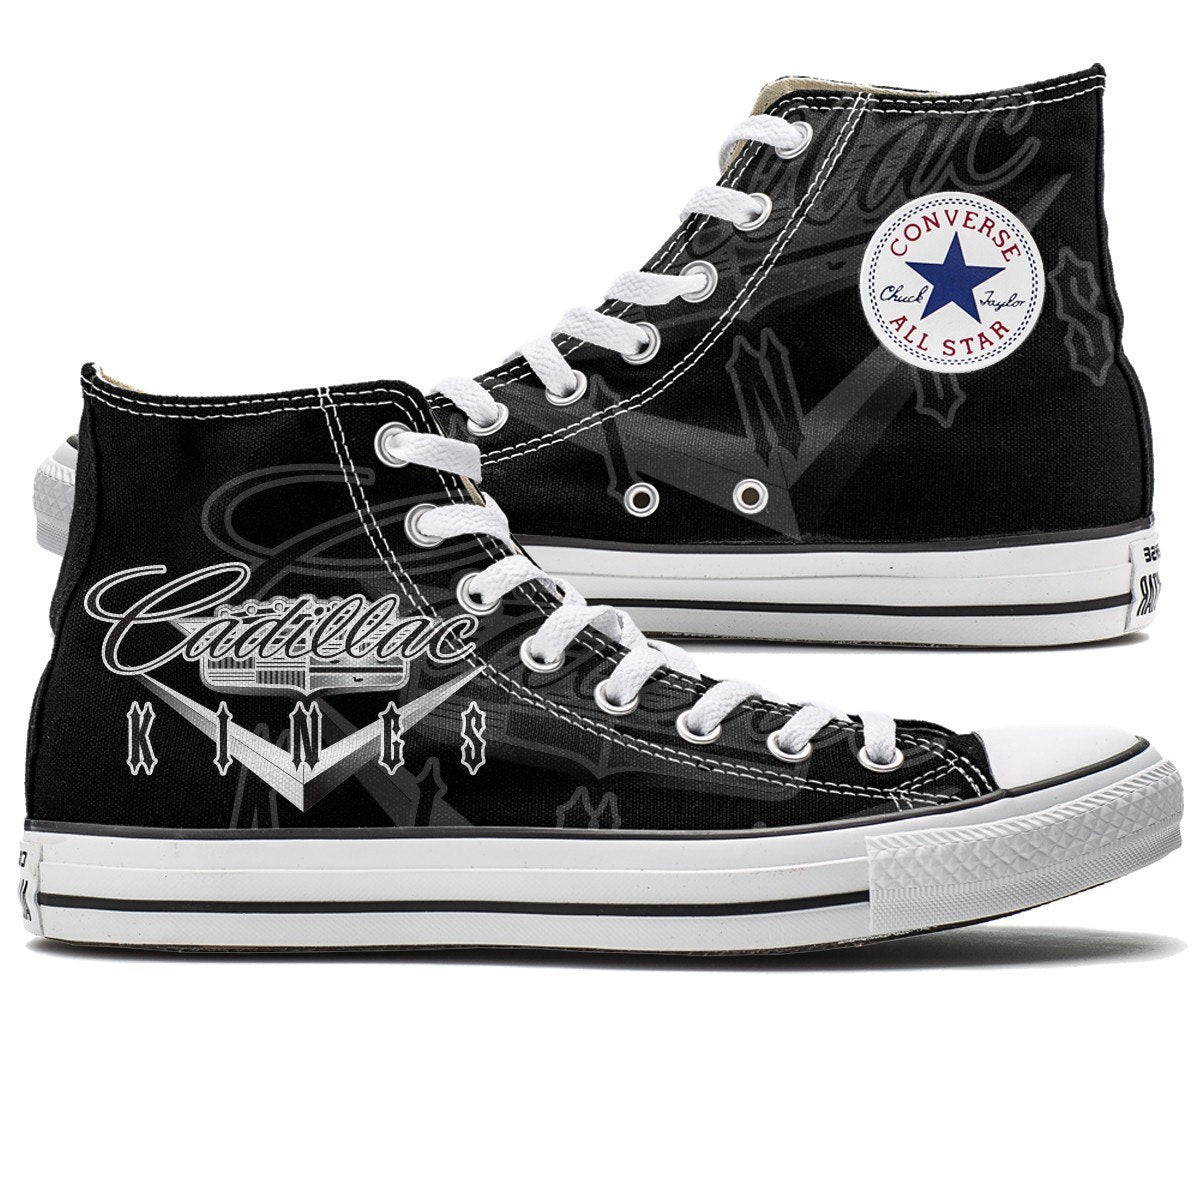 converse shoes high tops. shoes - limited edition cadillac kings converse high top tops s